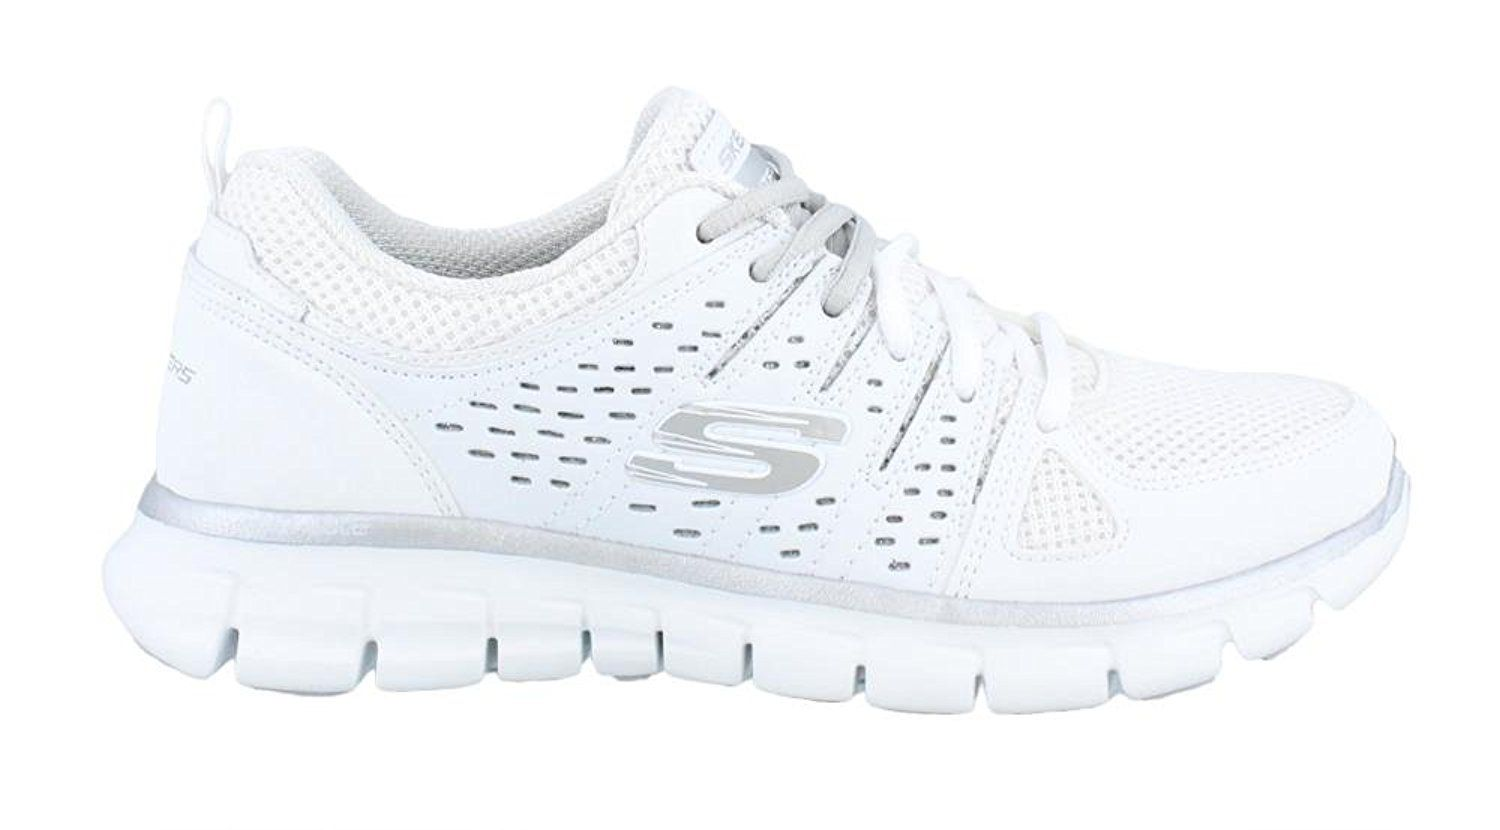 Women's Skechers, Look Book Running Sneakers WHITE SILVER M. Women's  Skechers, Look Book Running Sneakers. Add some fun sporty style to your  wardrobe!